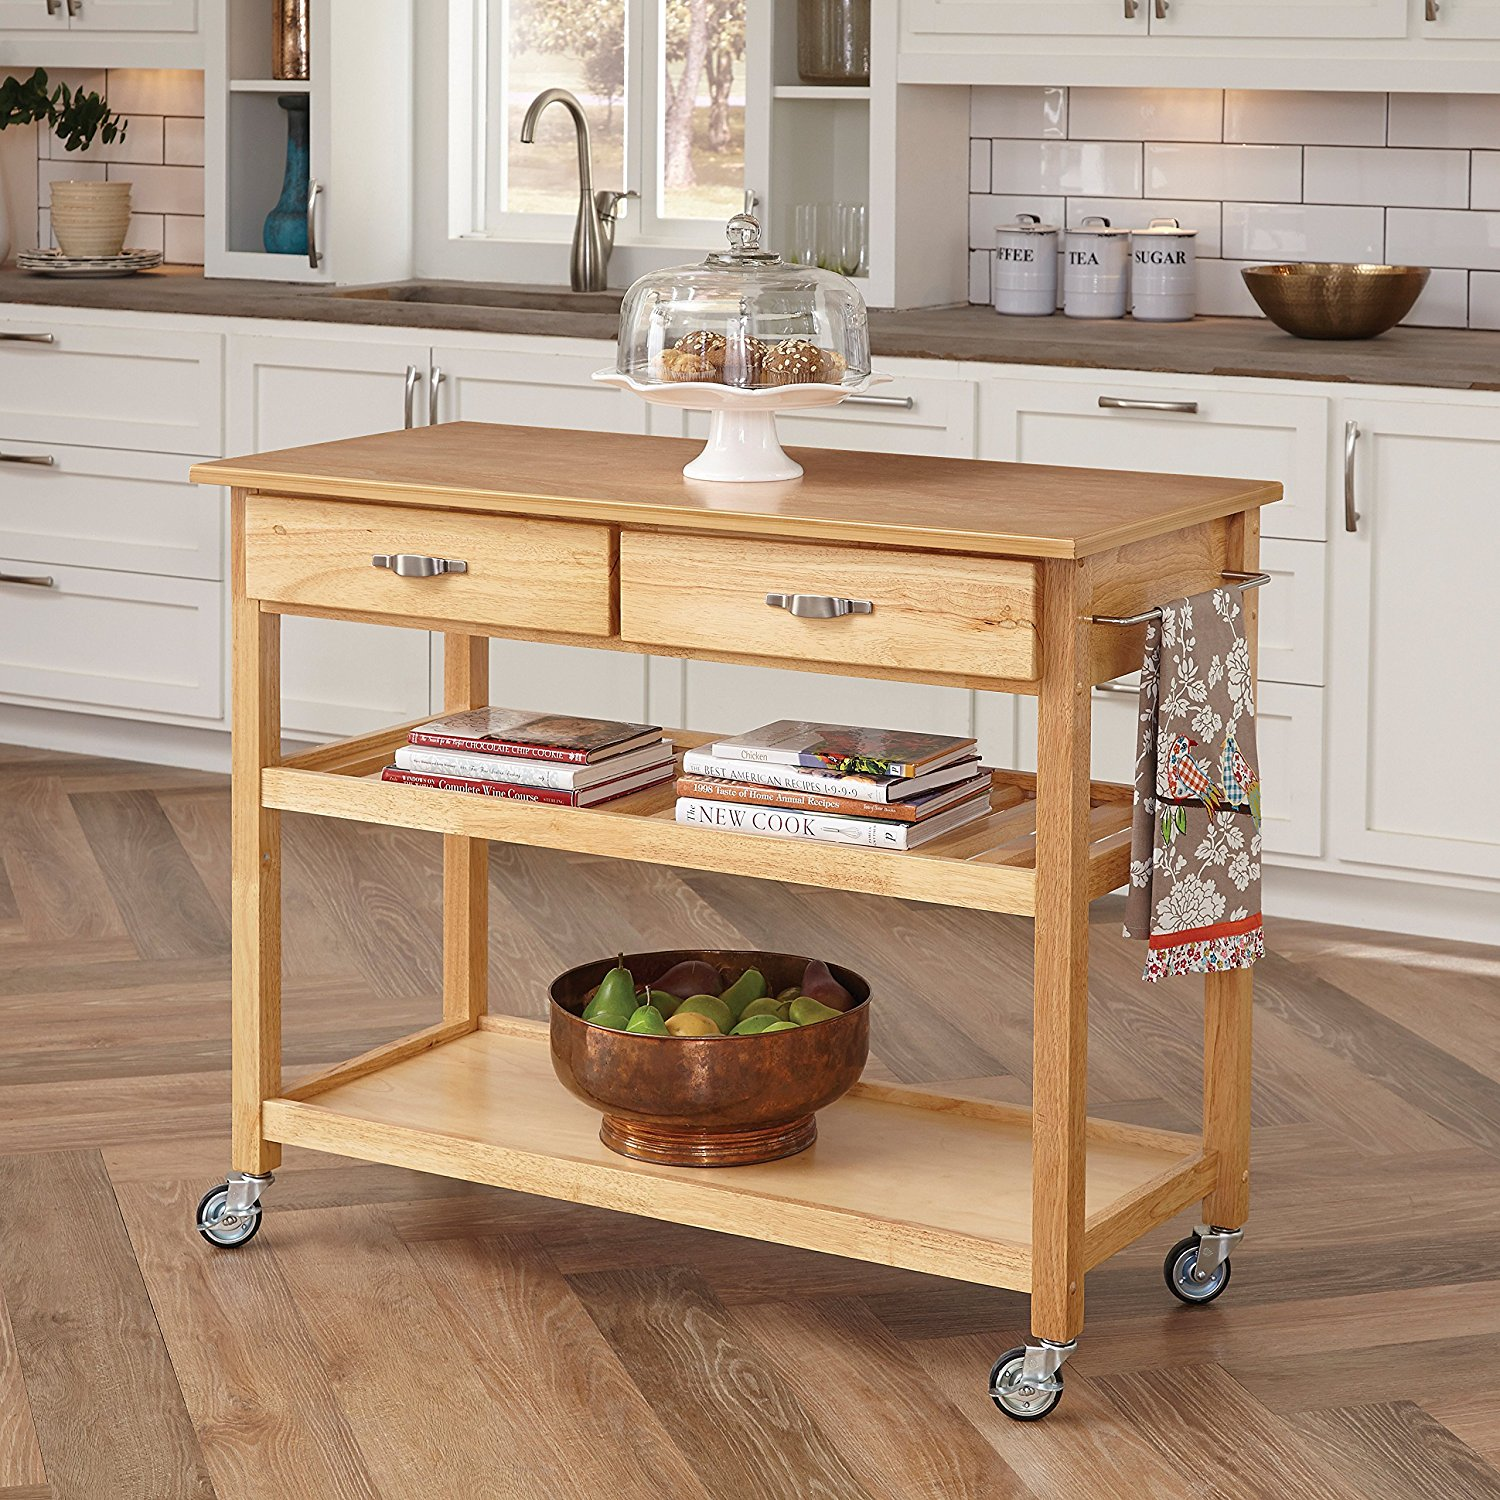 Details About Home Styles Solid Wood Top Kitchen Cart In Natural Finish 5216 95 New